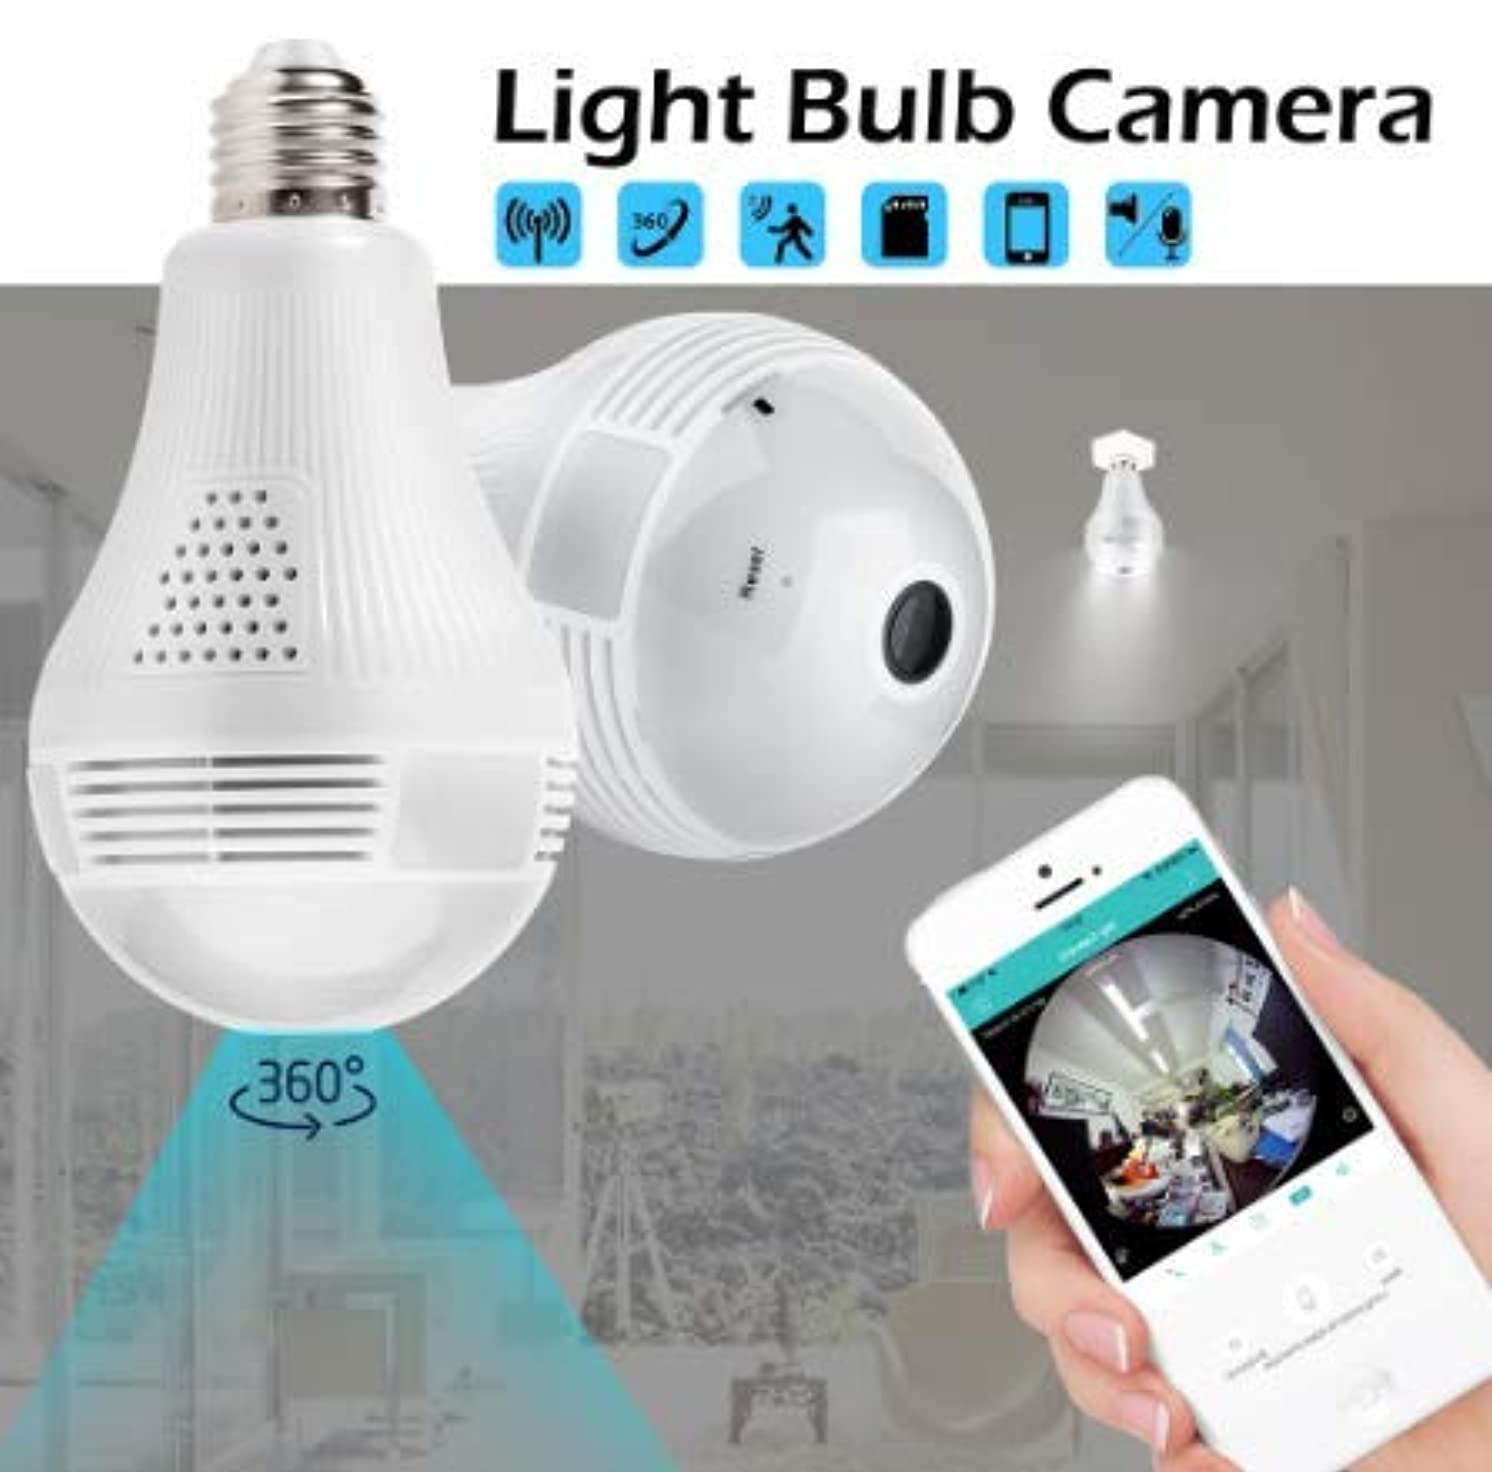 XACB Convenient Installation of WiFi Remote Monitor 360-degree Infrared Night Vision Panoramic Home Network Ultra Clear Double Light Source Security Bulb Camera,128G